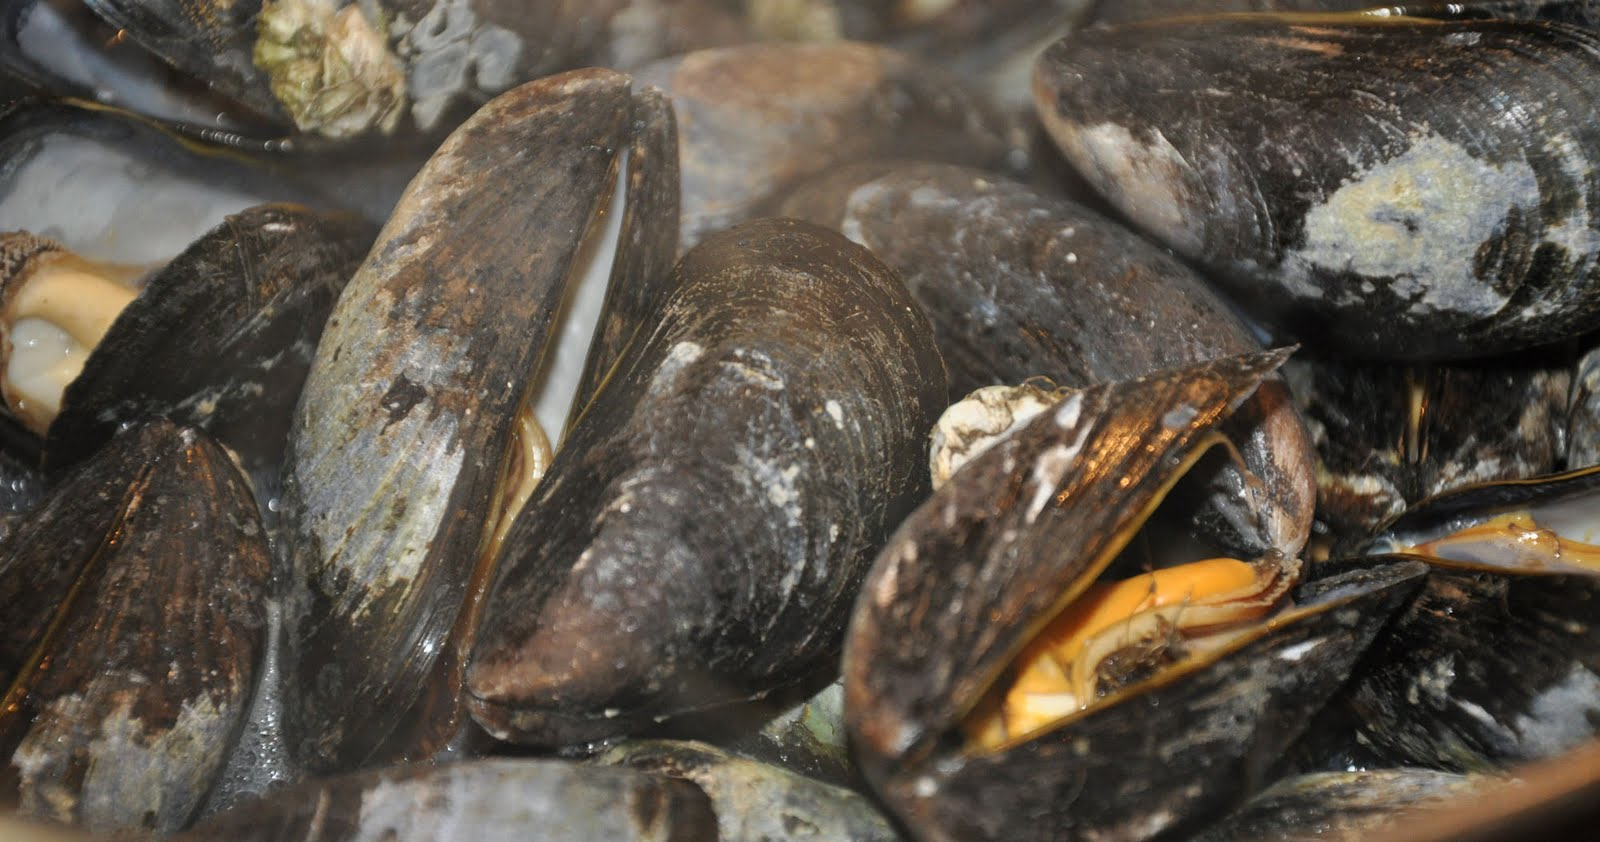 Fire and Food: Grilled Mussels with Garlic Butter and Parmesan